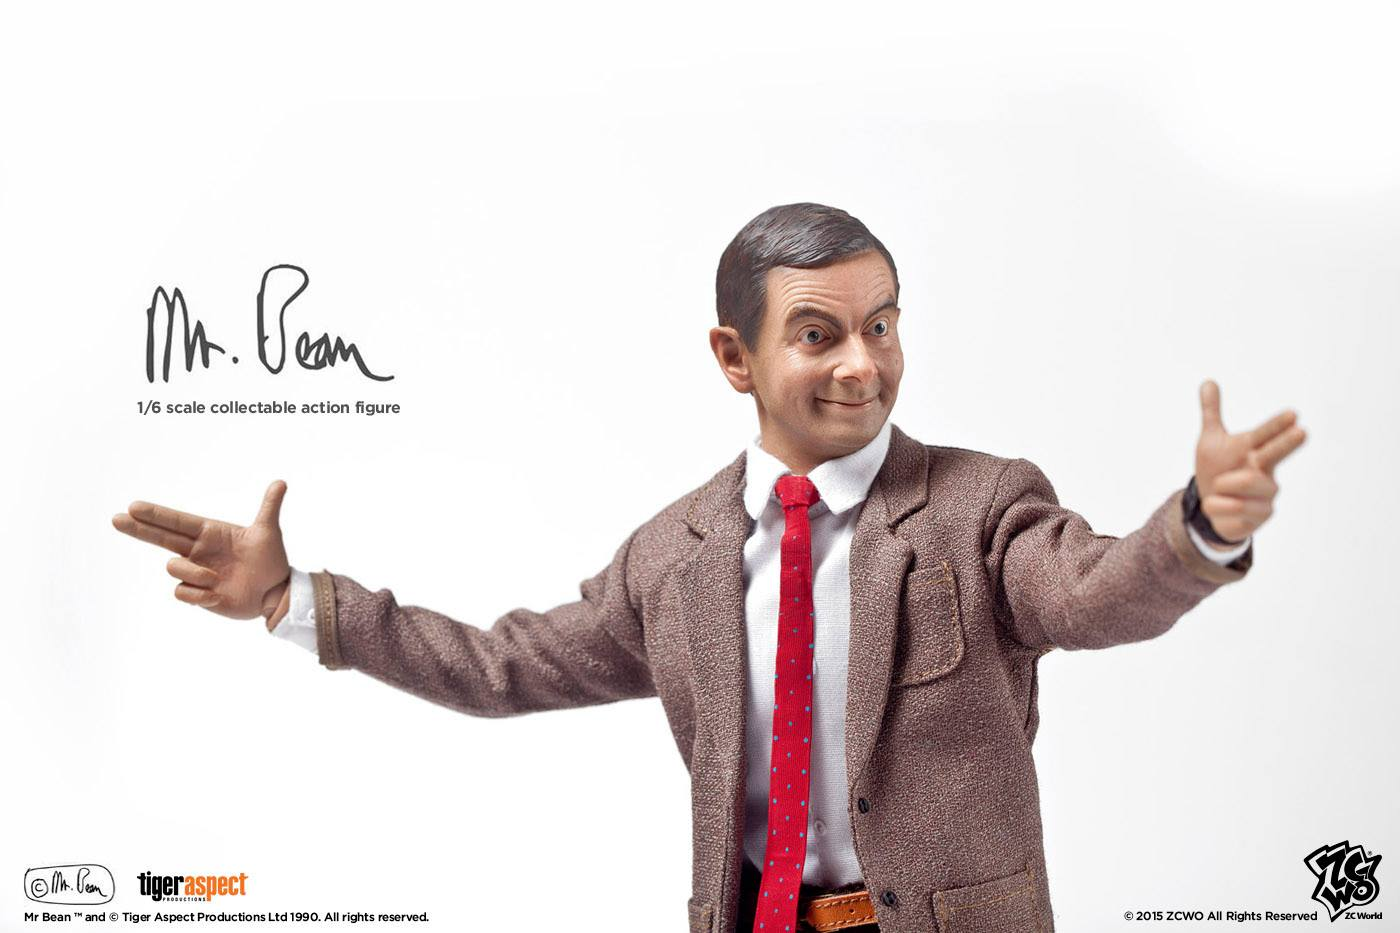 [ZCWO] Mr. Bean - 1/6 scale 150243j7306jm5kh5k61li